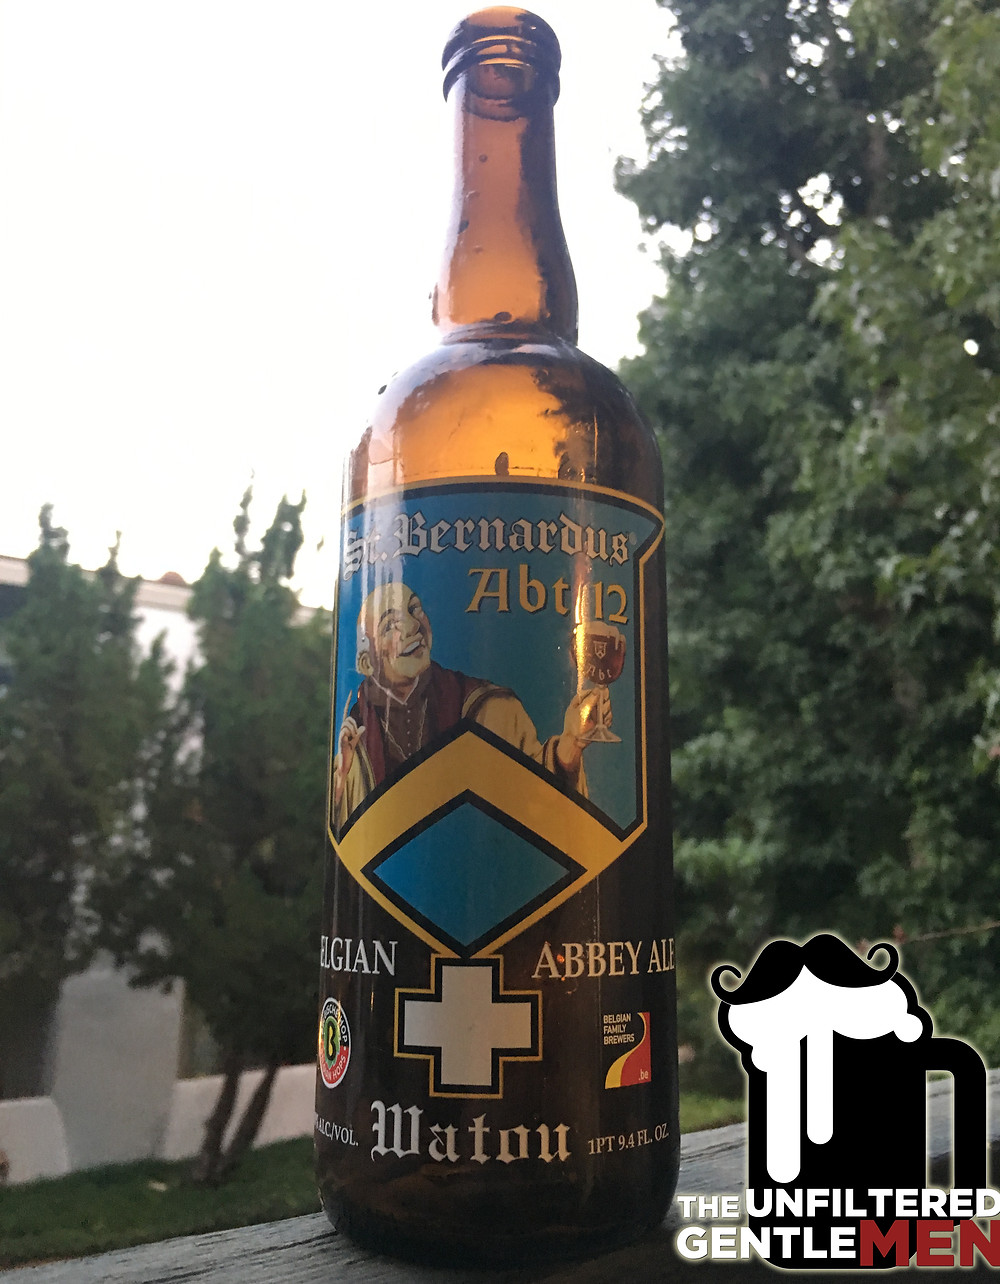 St. Bernardus Abt 12 Belgian Quad Unfiltered Gentlemen